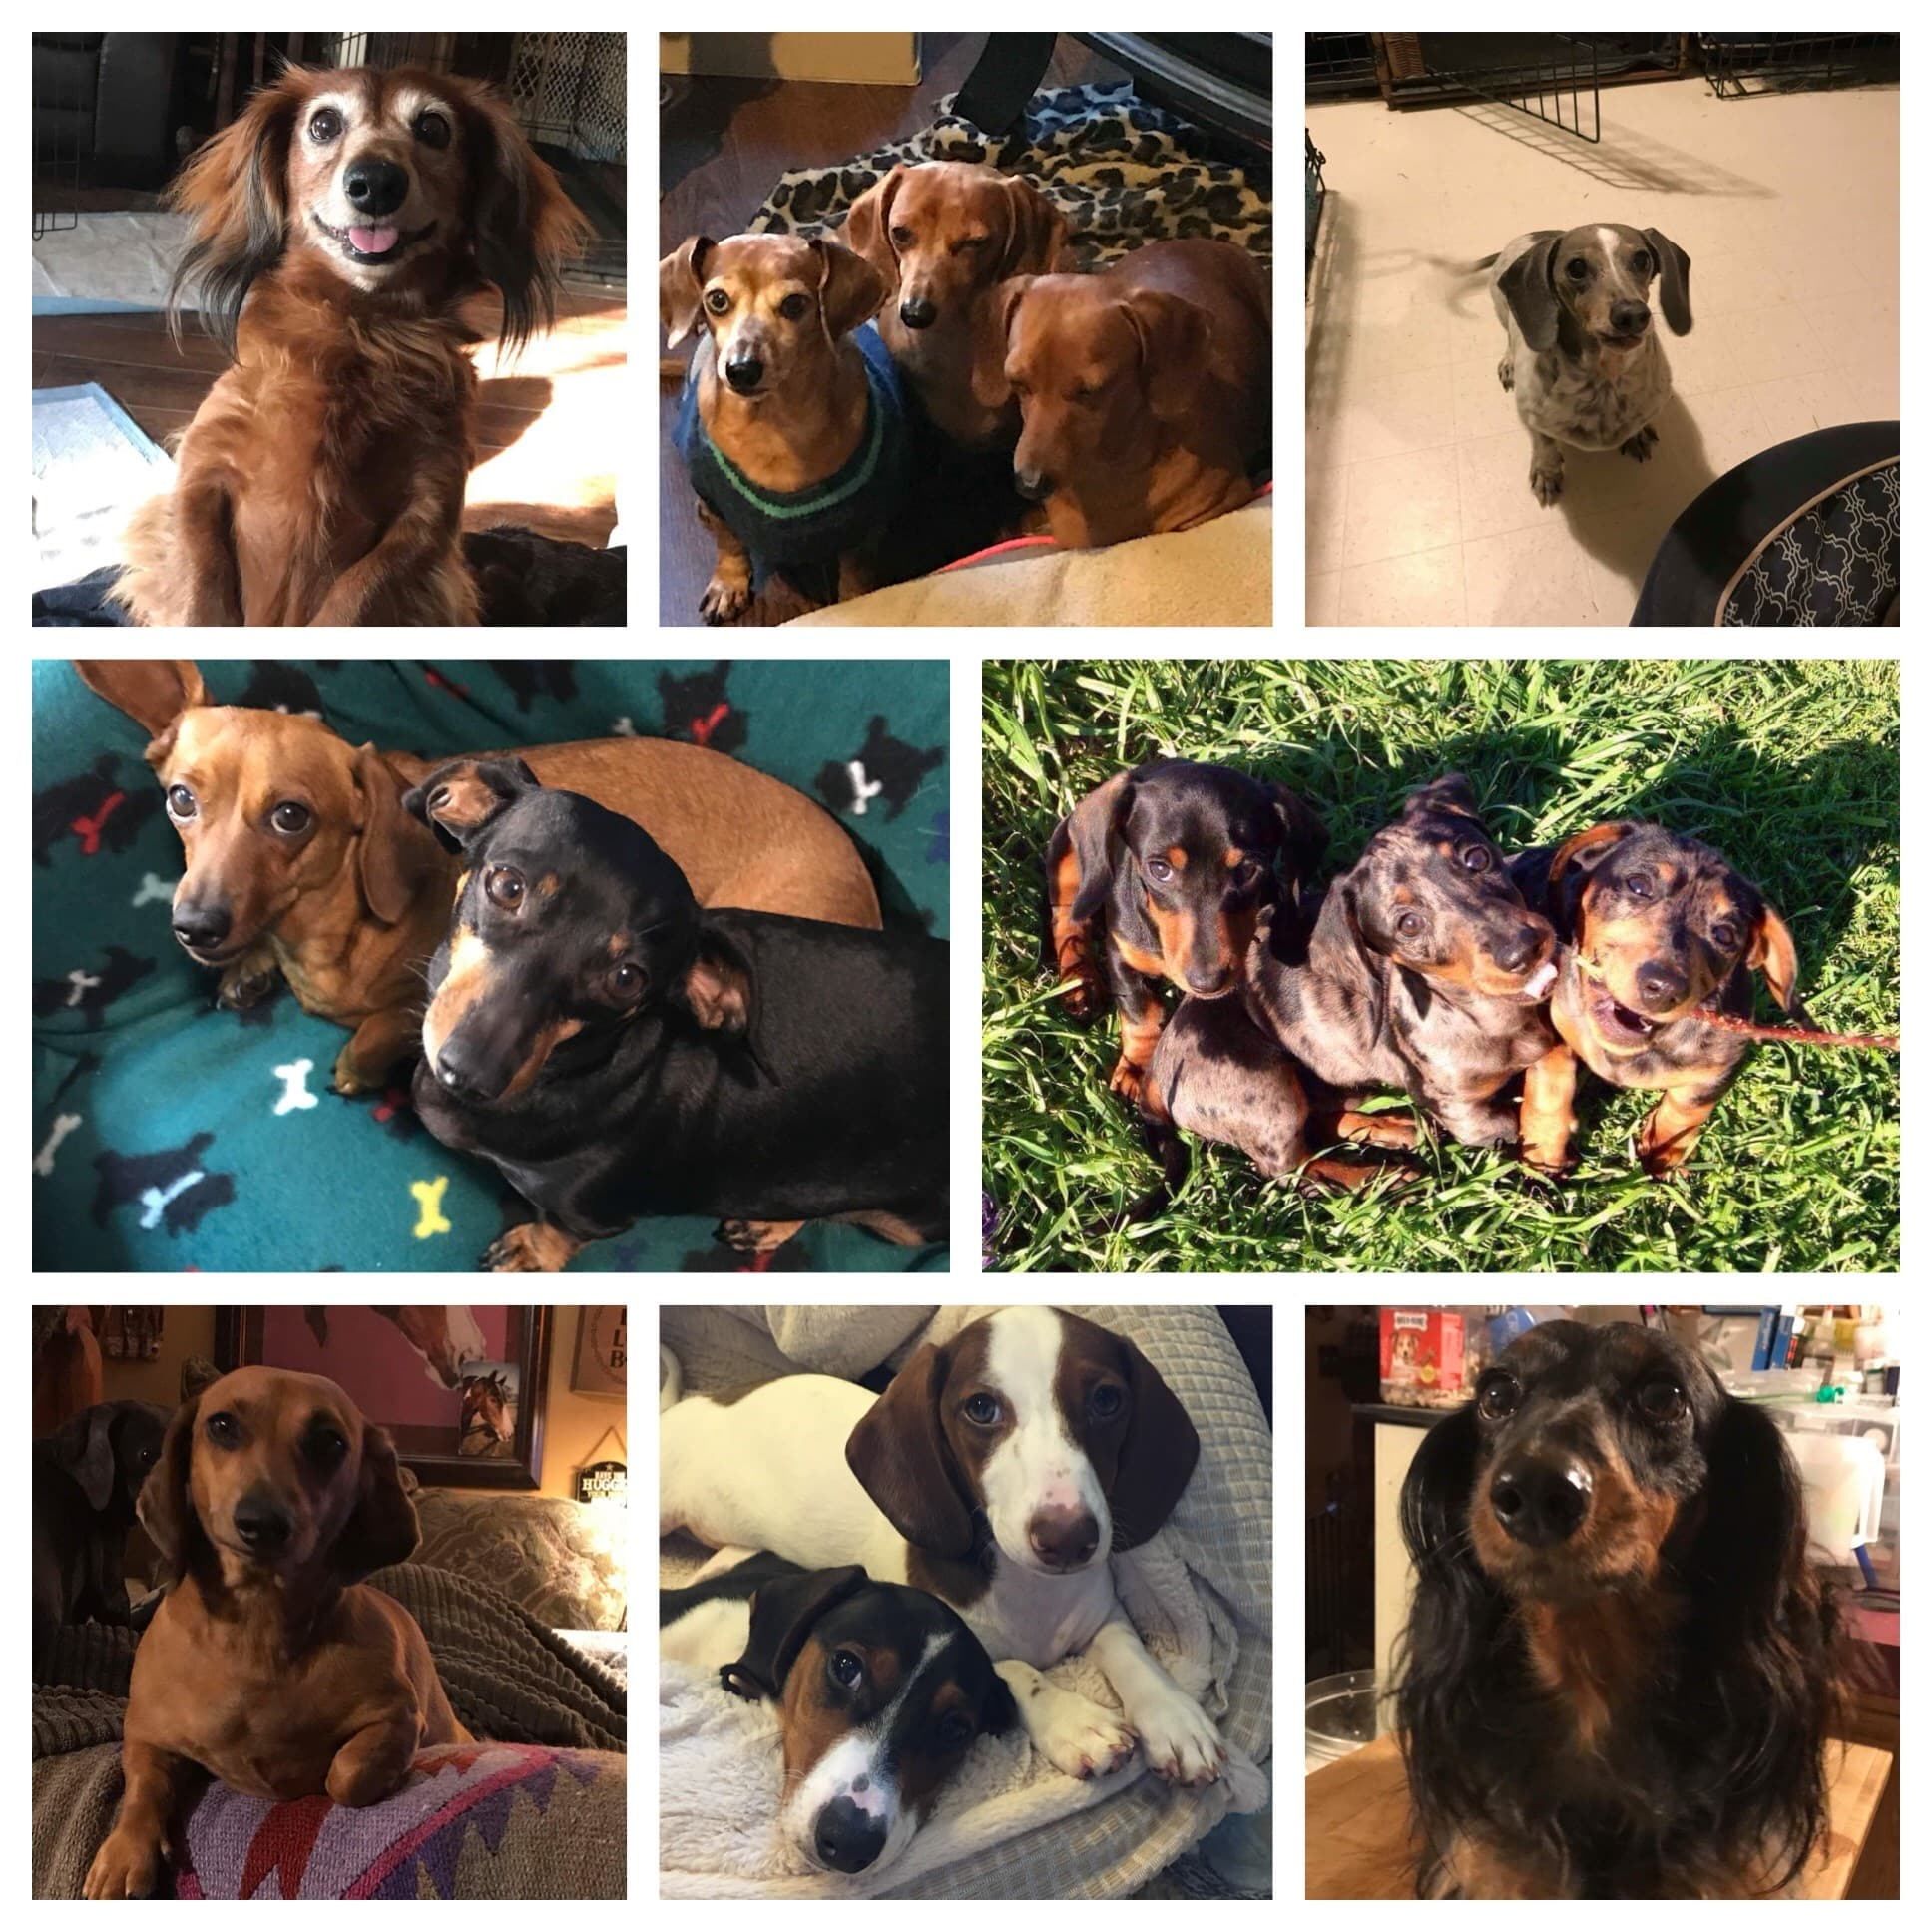 Collage of Dog Images